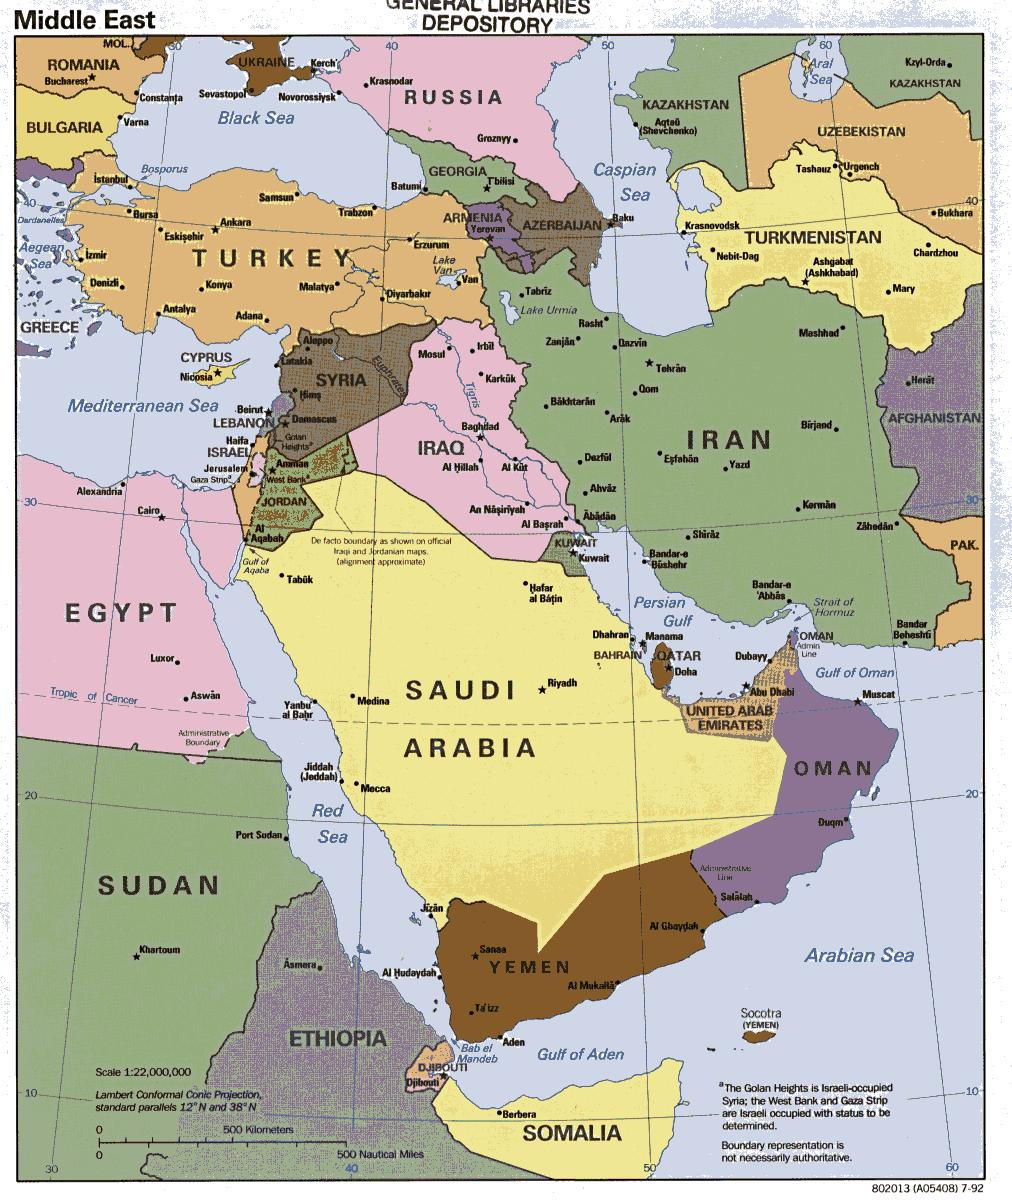 WHAT ABOUT KUWAIT S GEOGRAPHICAL LOCATION WOULD APPEAL TO IRAQ?